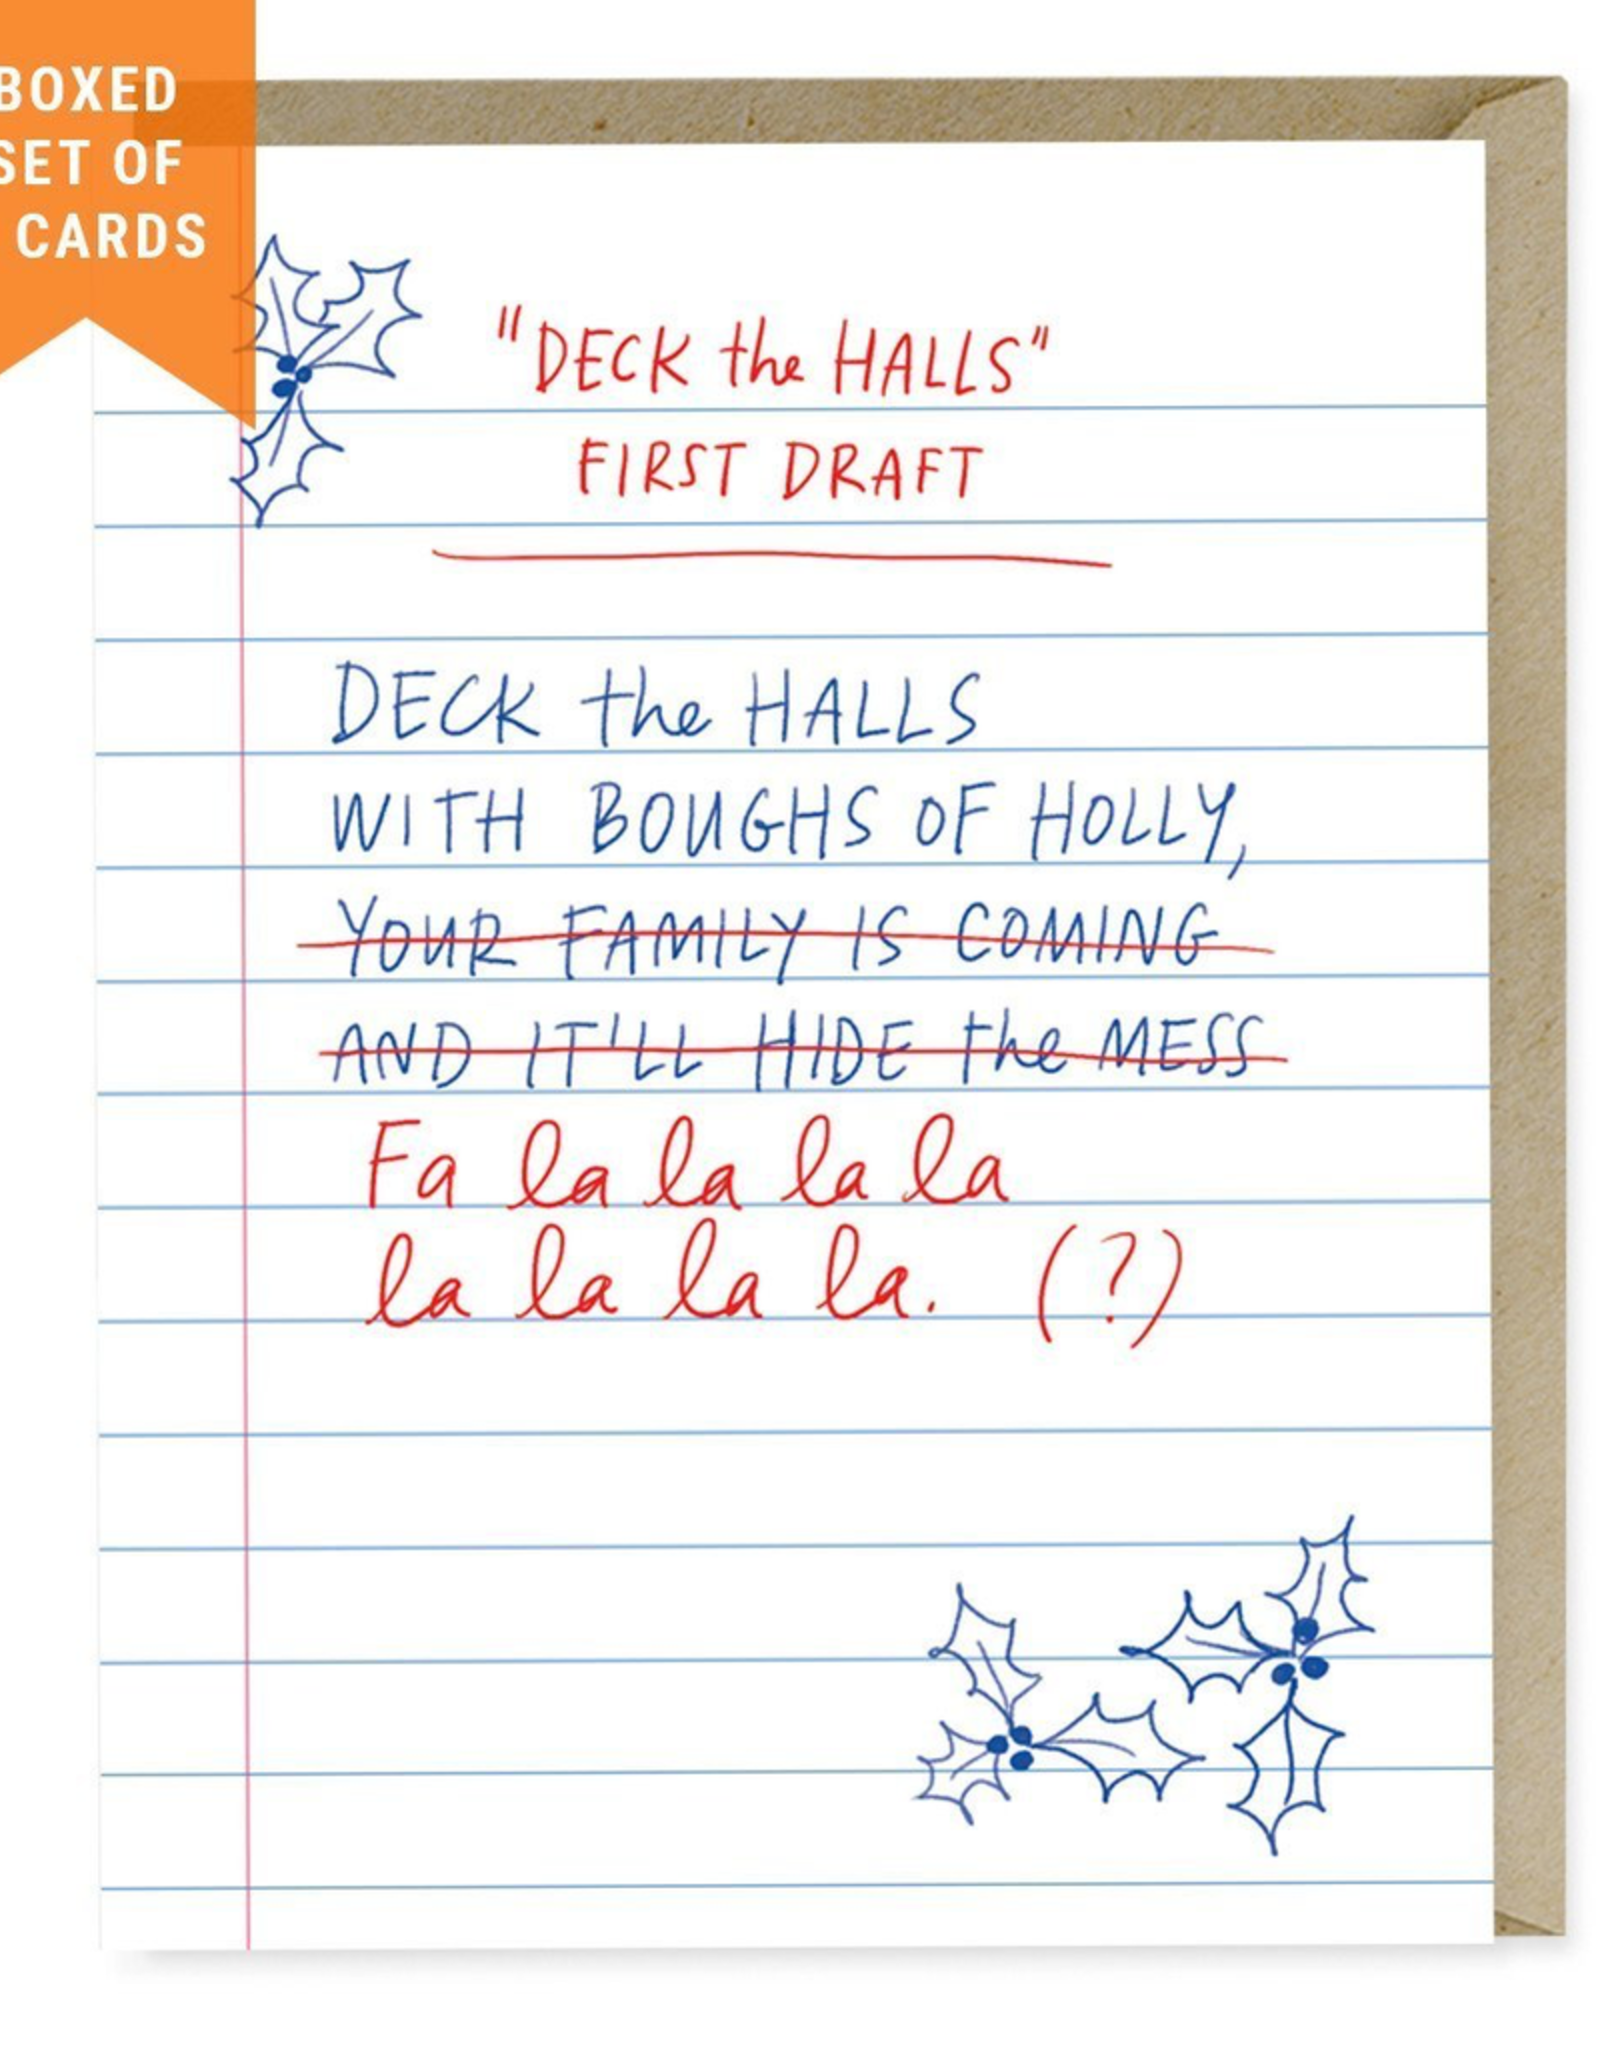 Paper E Clips Paper E Clips First Draft Deck The Halls Christmas Card-Boxed